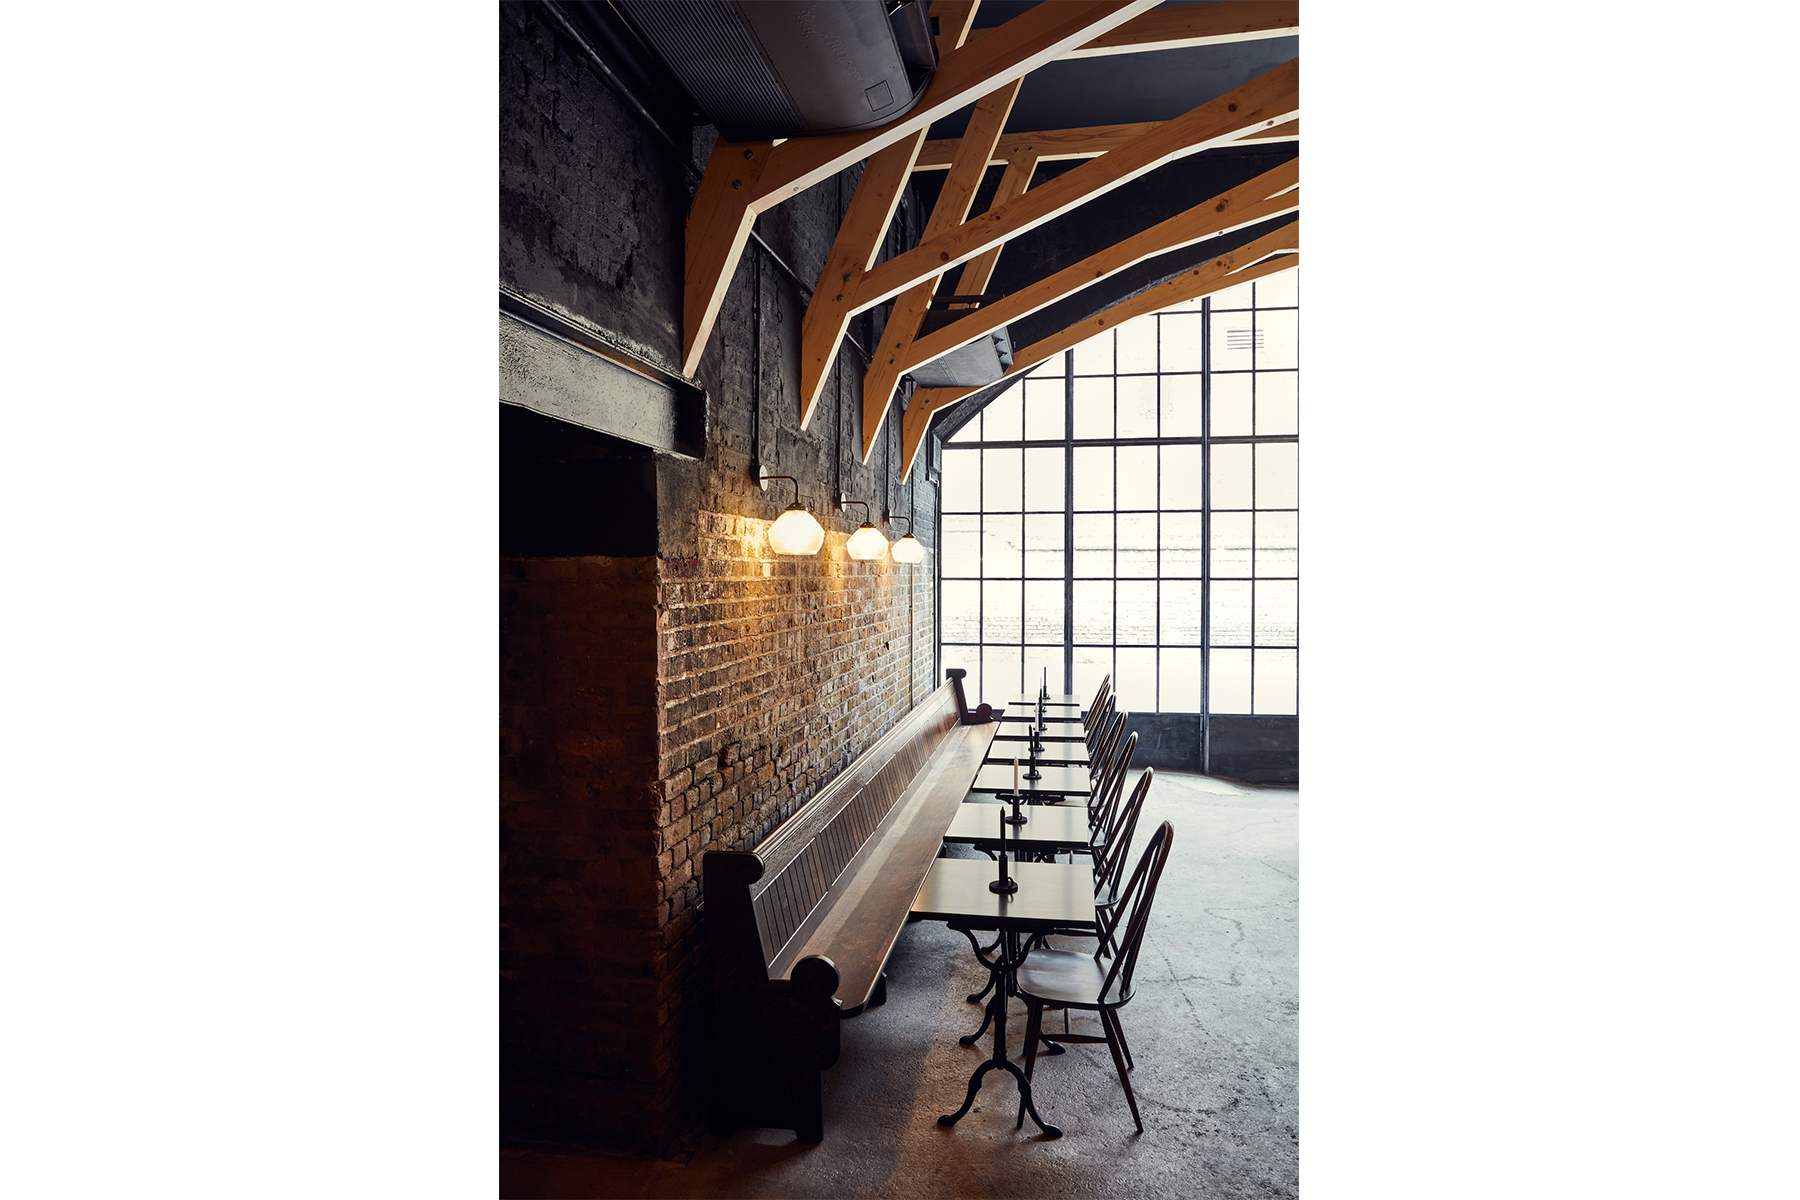 Interior-bench-seating_SJAH_Nathan-Pask-Edit